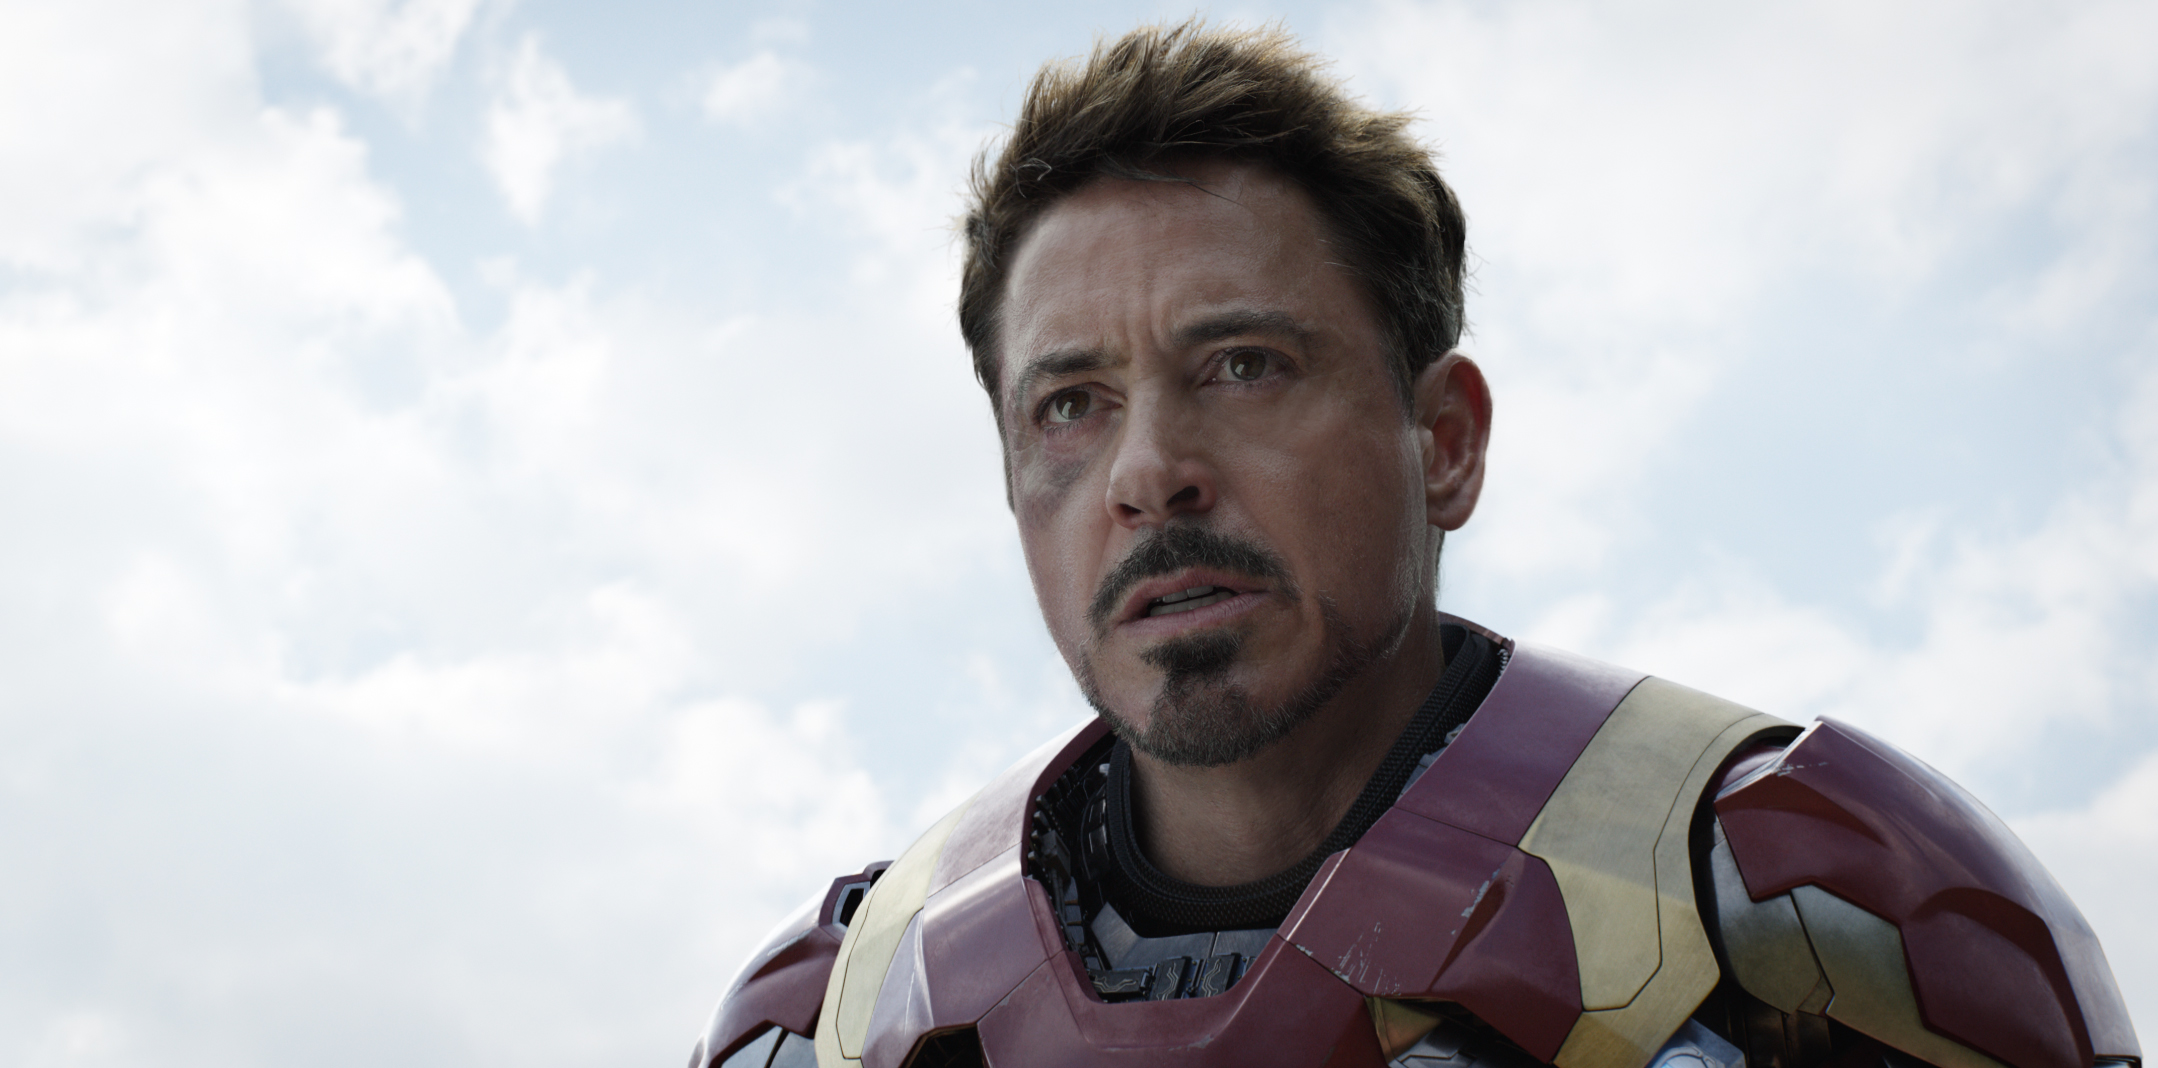 Marvel's Captain America: Civil War Iron Man/Tony Stark (Robert Downey Jr.) Photo Credit: Film Frame © Marvel 2016